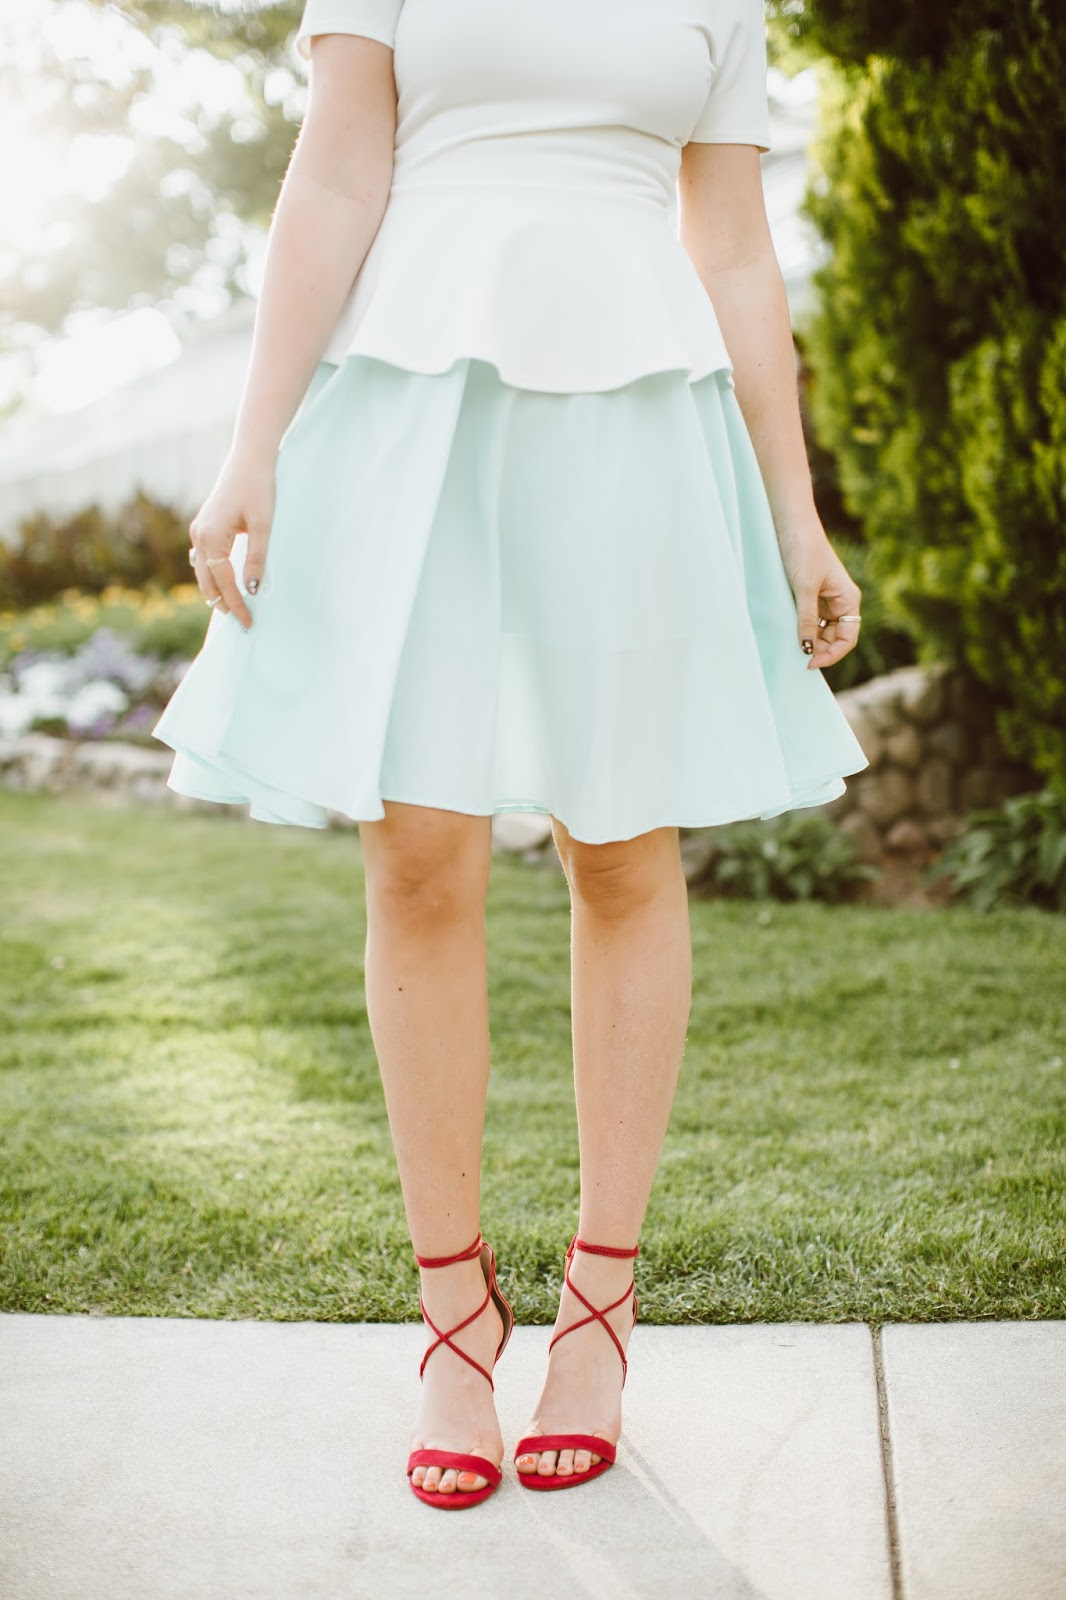 Summer Outfit, Fashion Blogger, Pink Heels